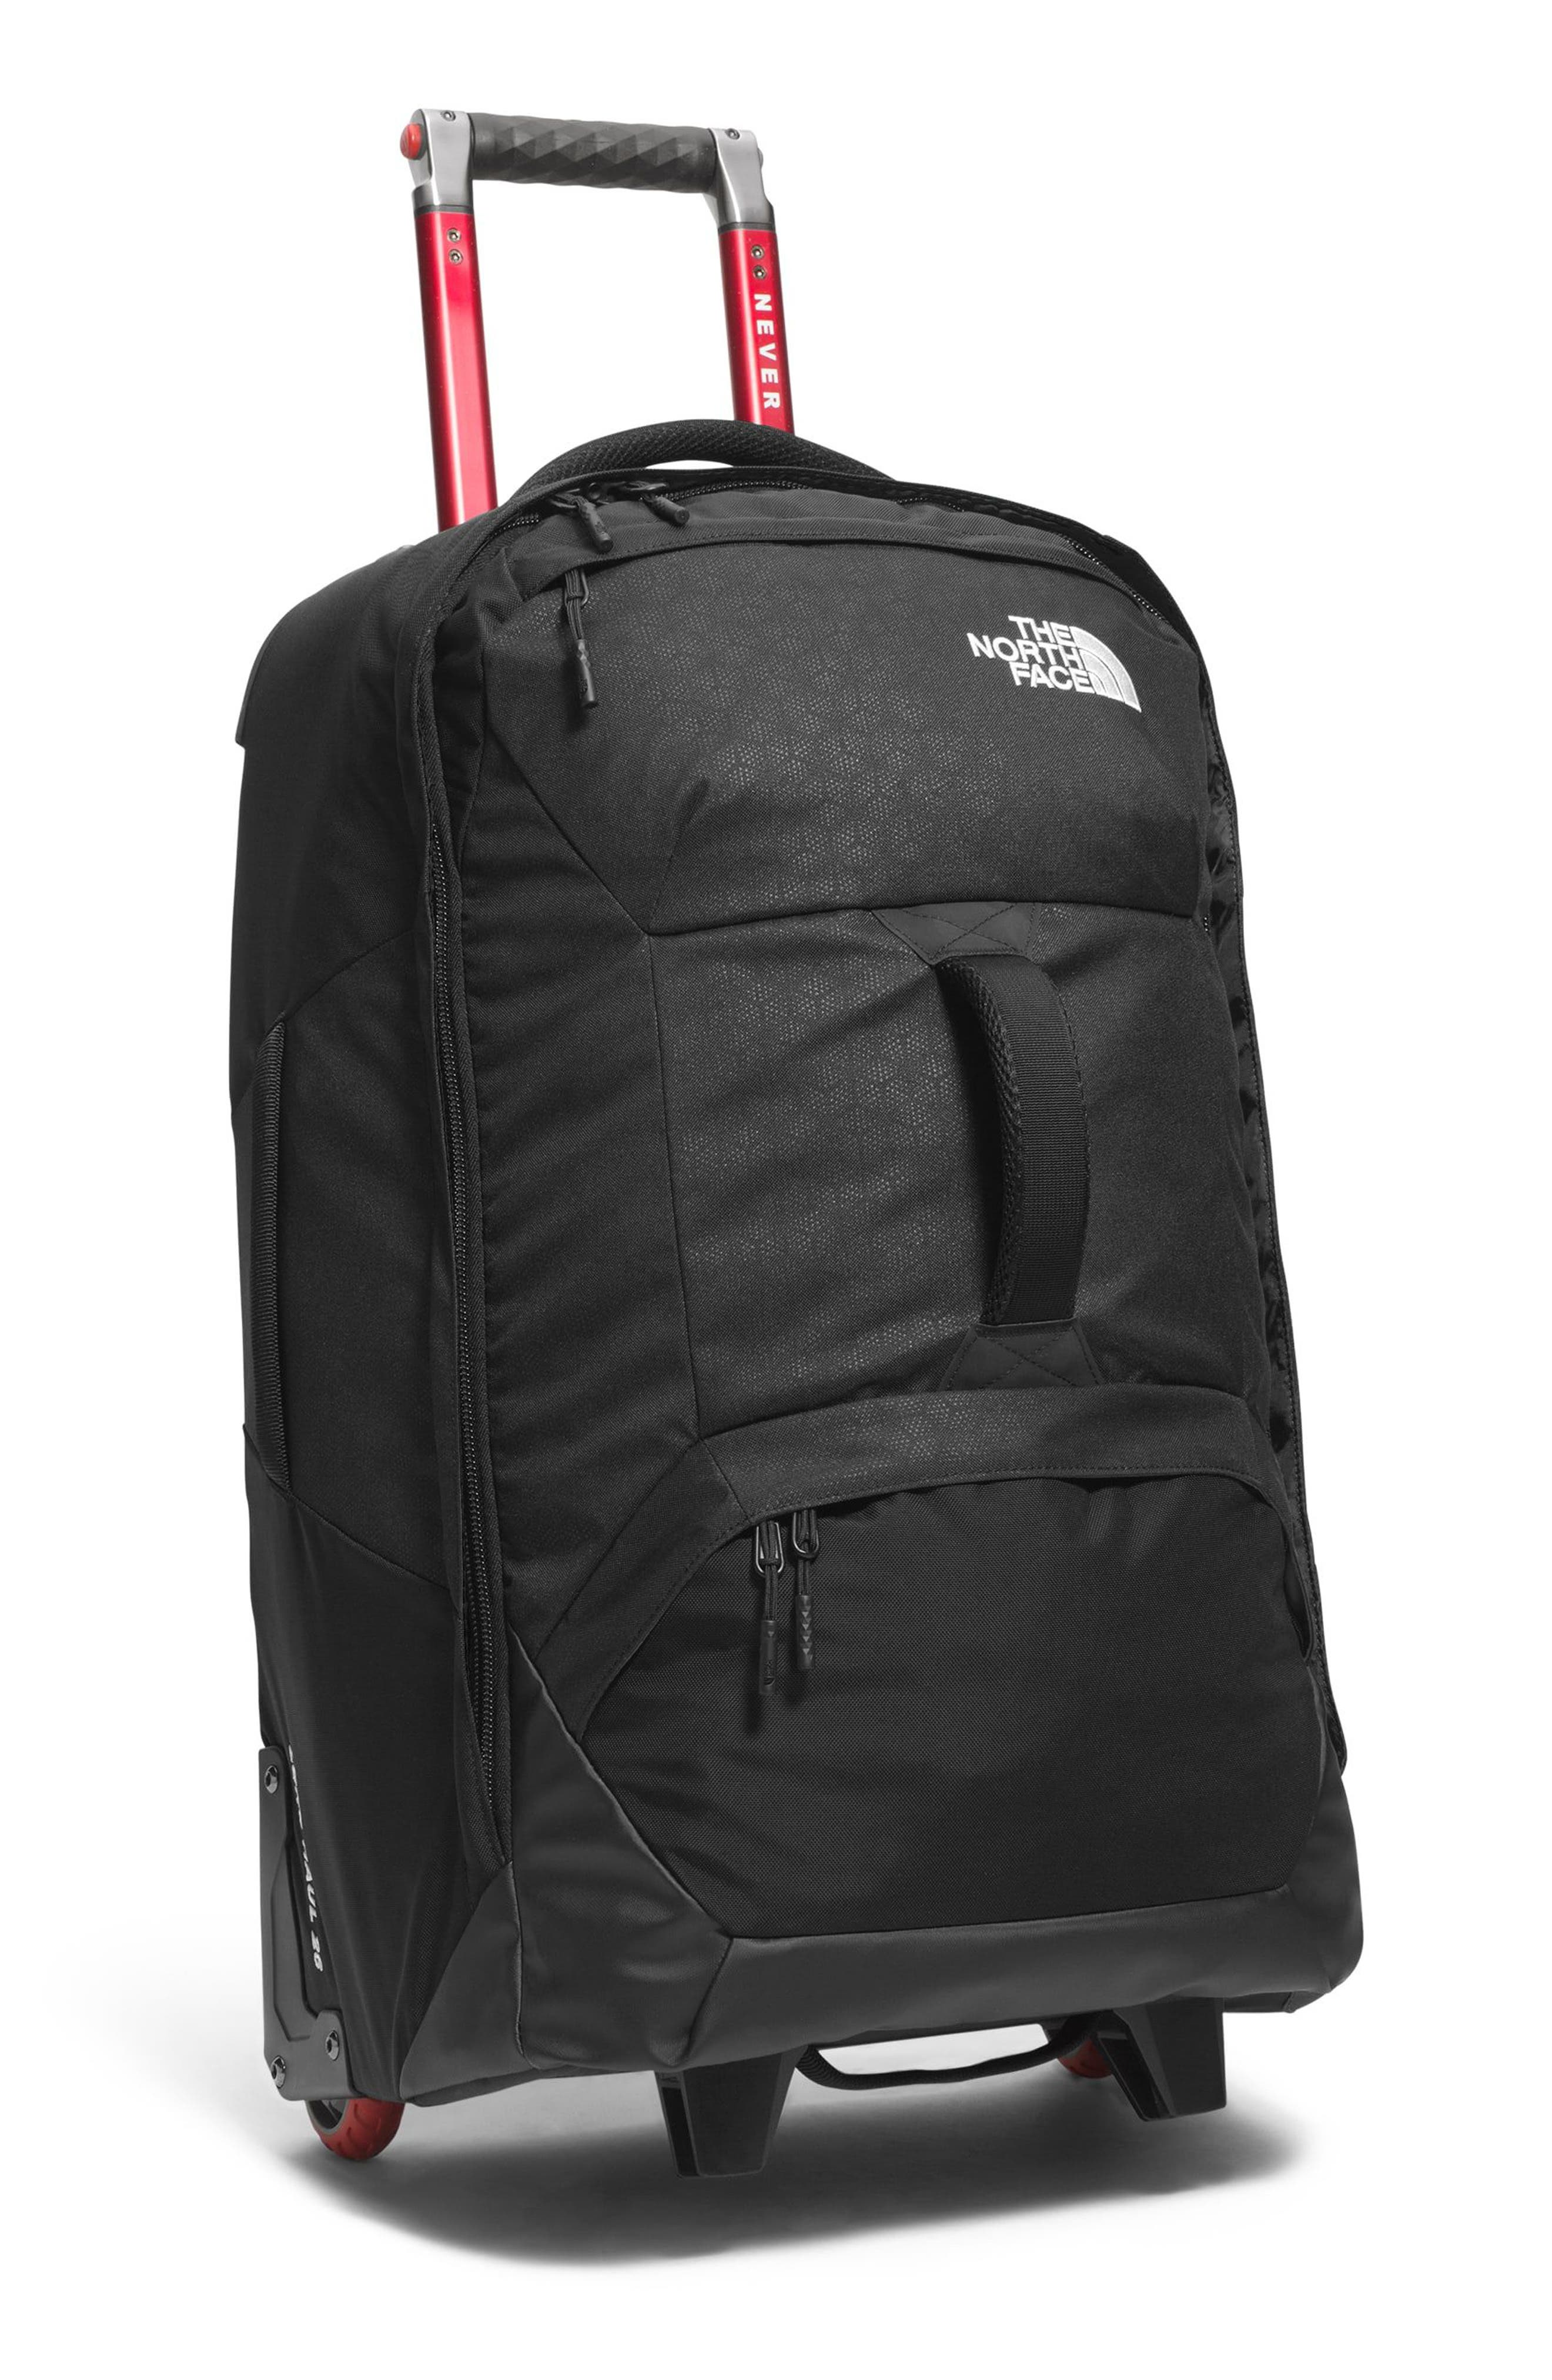 Main Image - The North Face Long Haul 26-Inch Rolling Duffel Bag